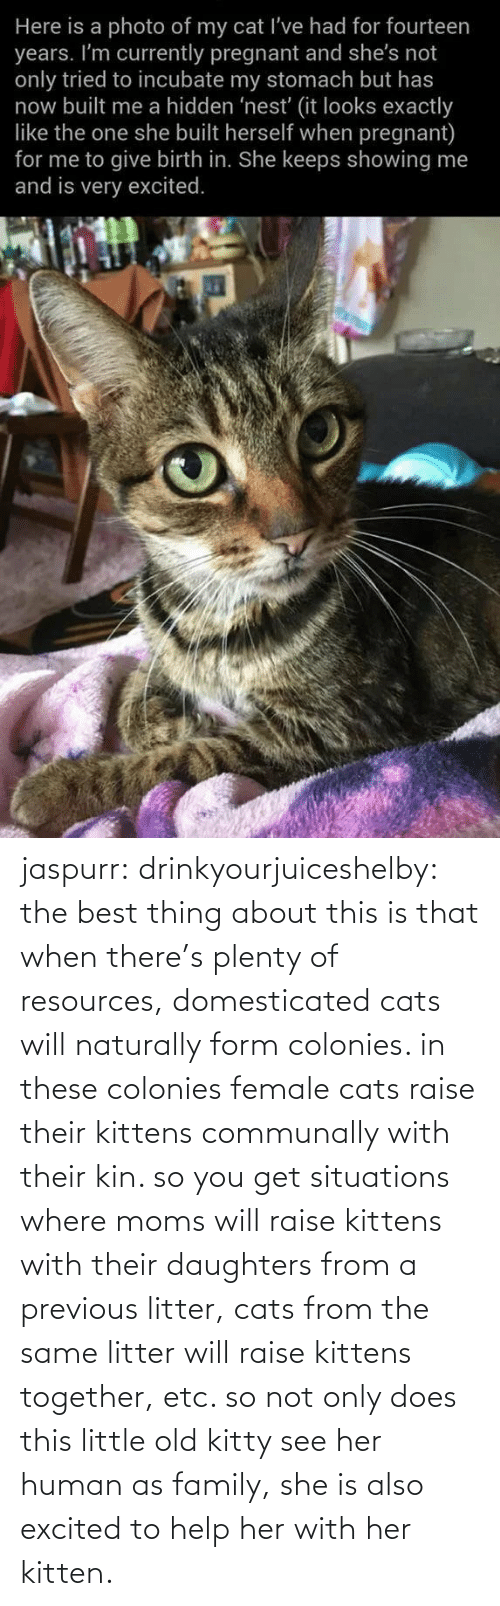 same: jaspurr:  drinkyourjuiceshelby:    the best thing about this is that when there's plenty of resources, domesticated cats will naturally form colonies. in these colonies female cats raise their kittens communally with their kin. so you get situations where moms will raise kittens with their daughters from a previous litter, cats from the same litter will raise kittens together, etc. so not only does this little old kitty see her human as family, she is also excited to help her with her kitten.